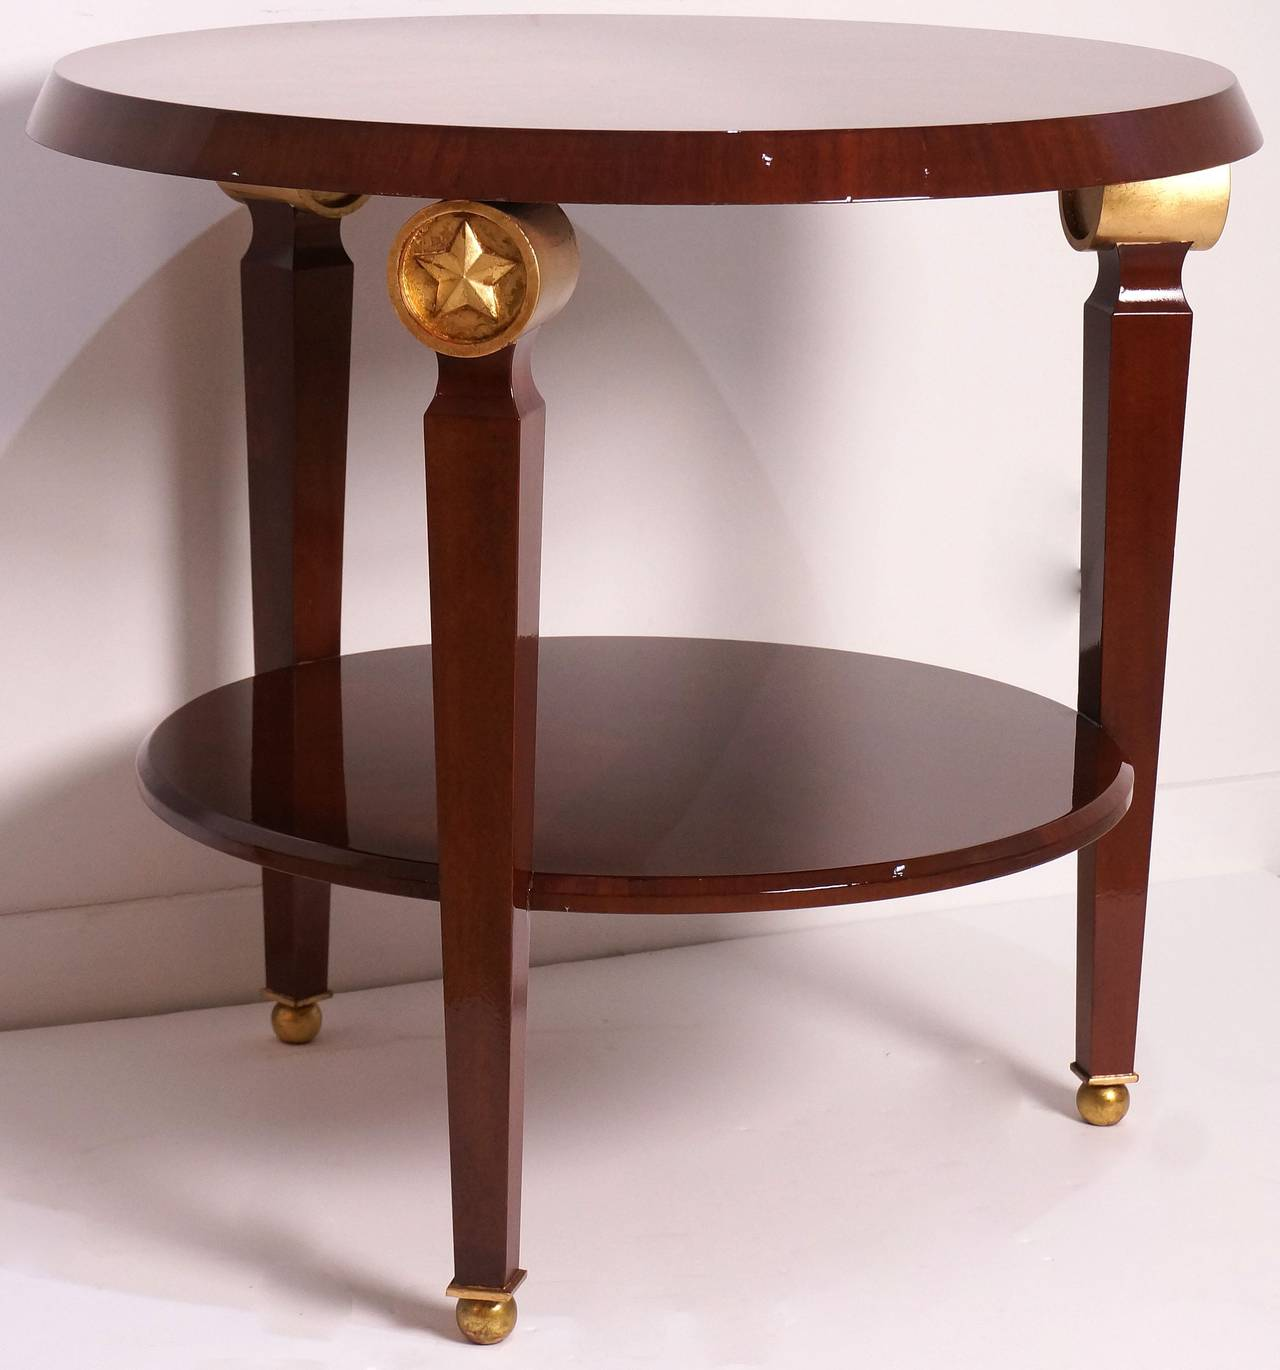 Two-Tiered Center Table in the Style of Maison Jansen, France, 1960s  For Sale 3